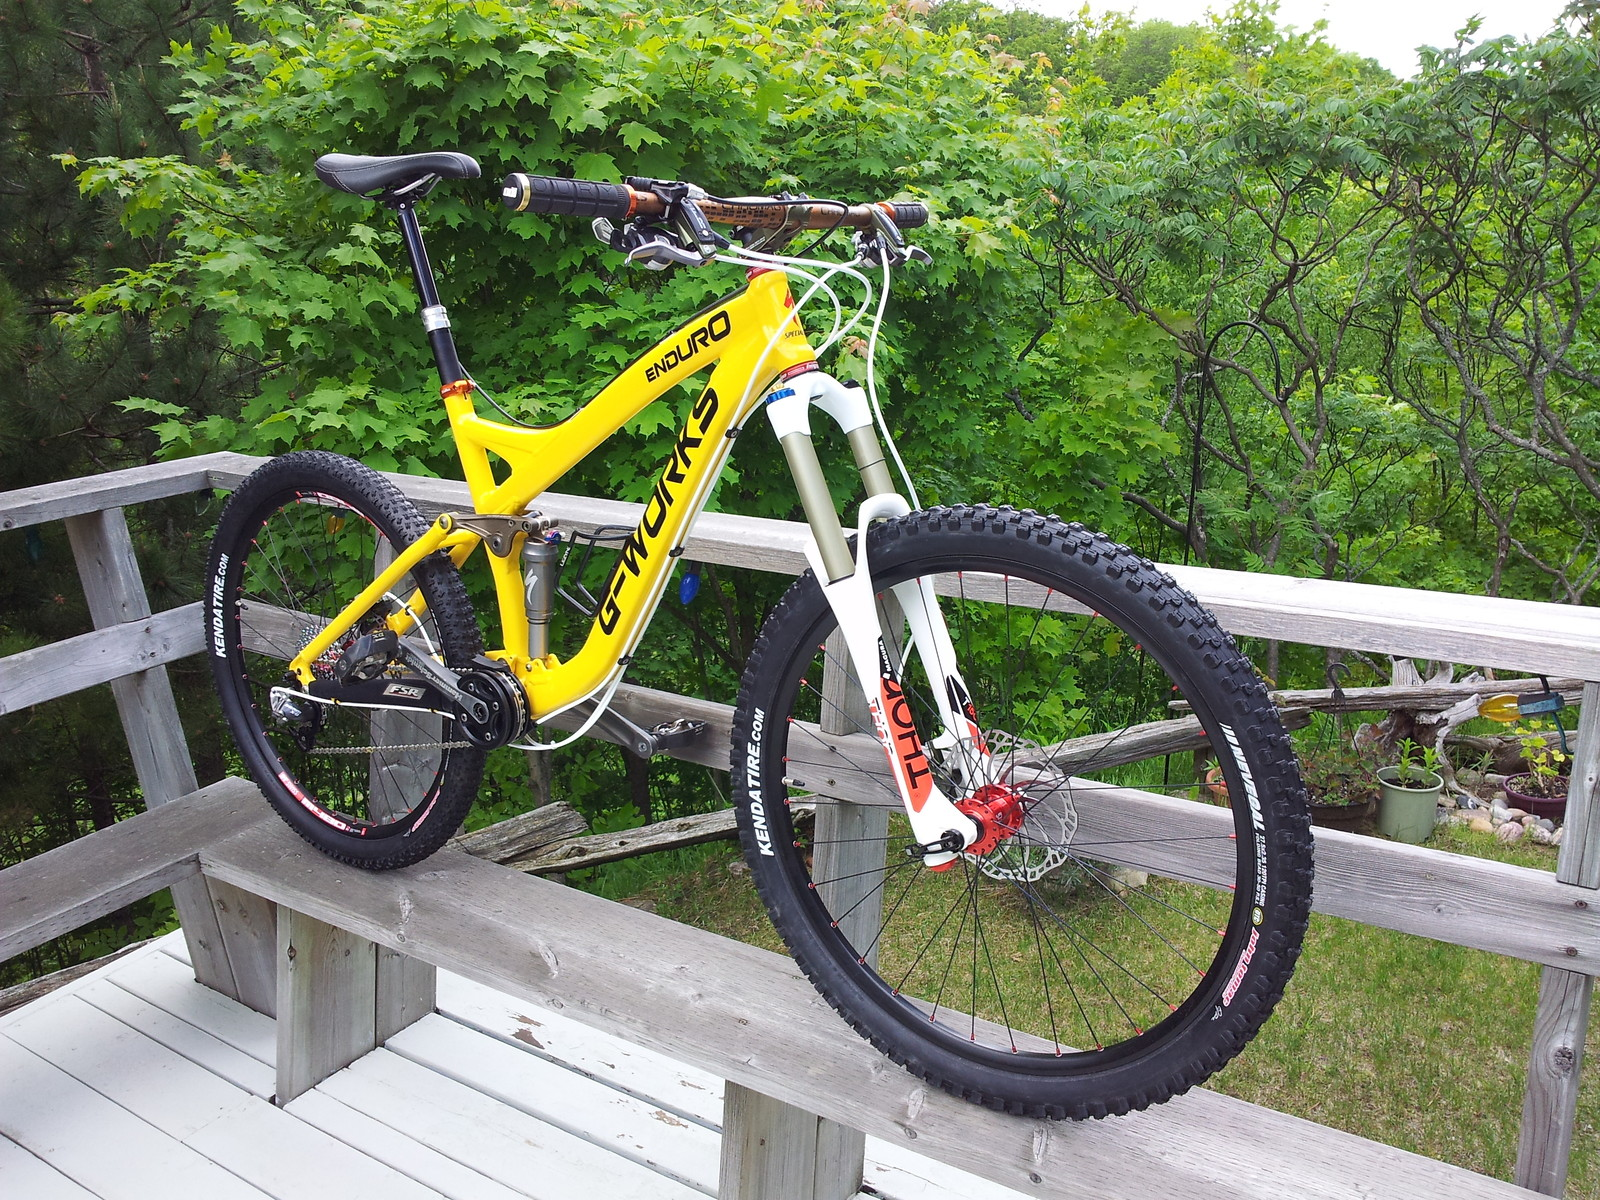 Rebuilt and Custom Painted 2007 Specialized Enduro